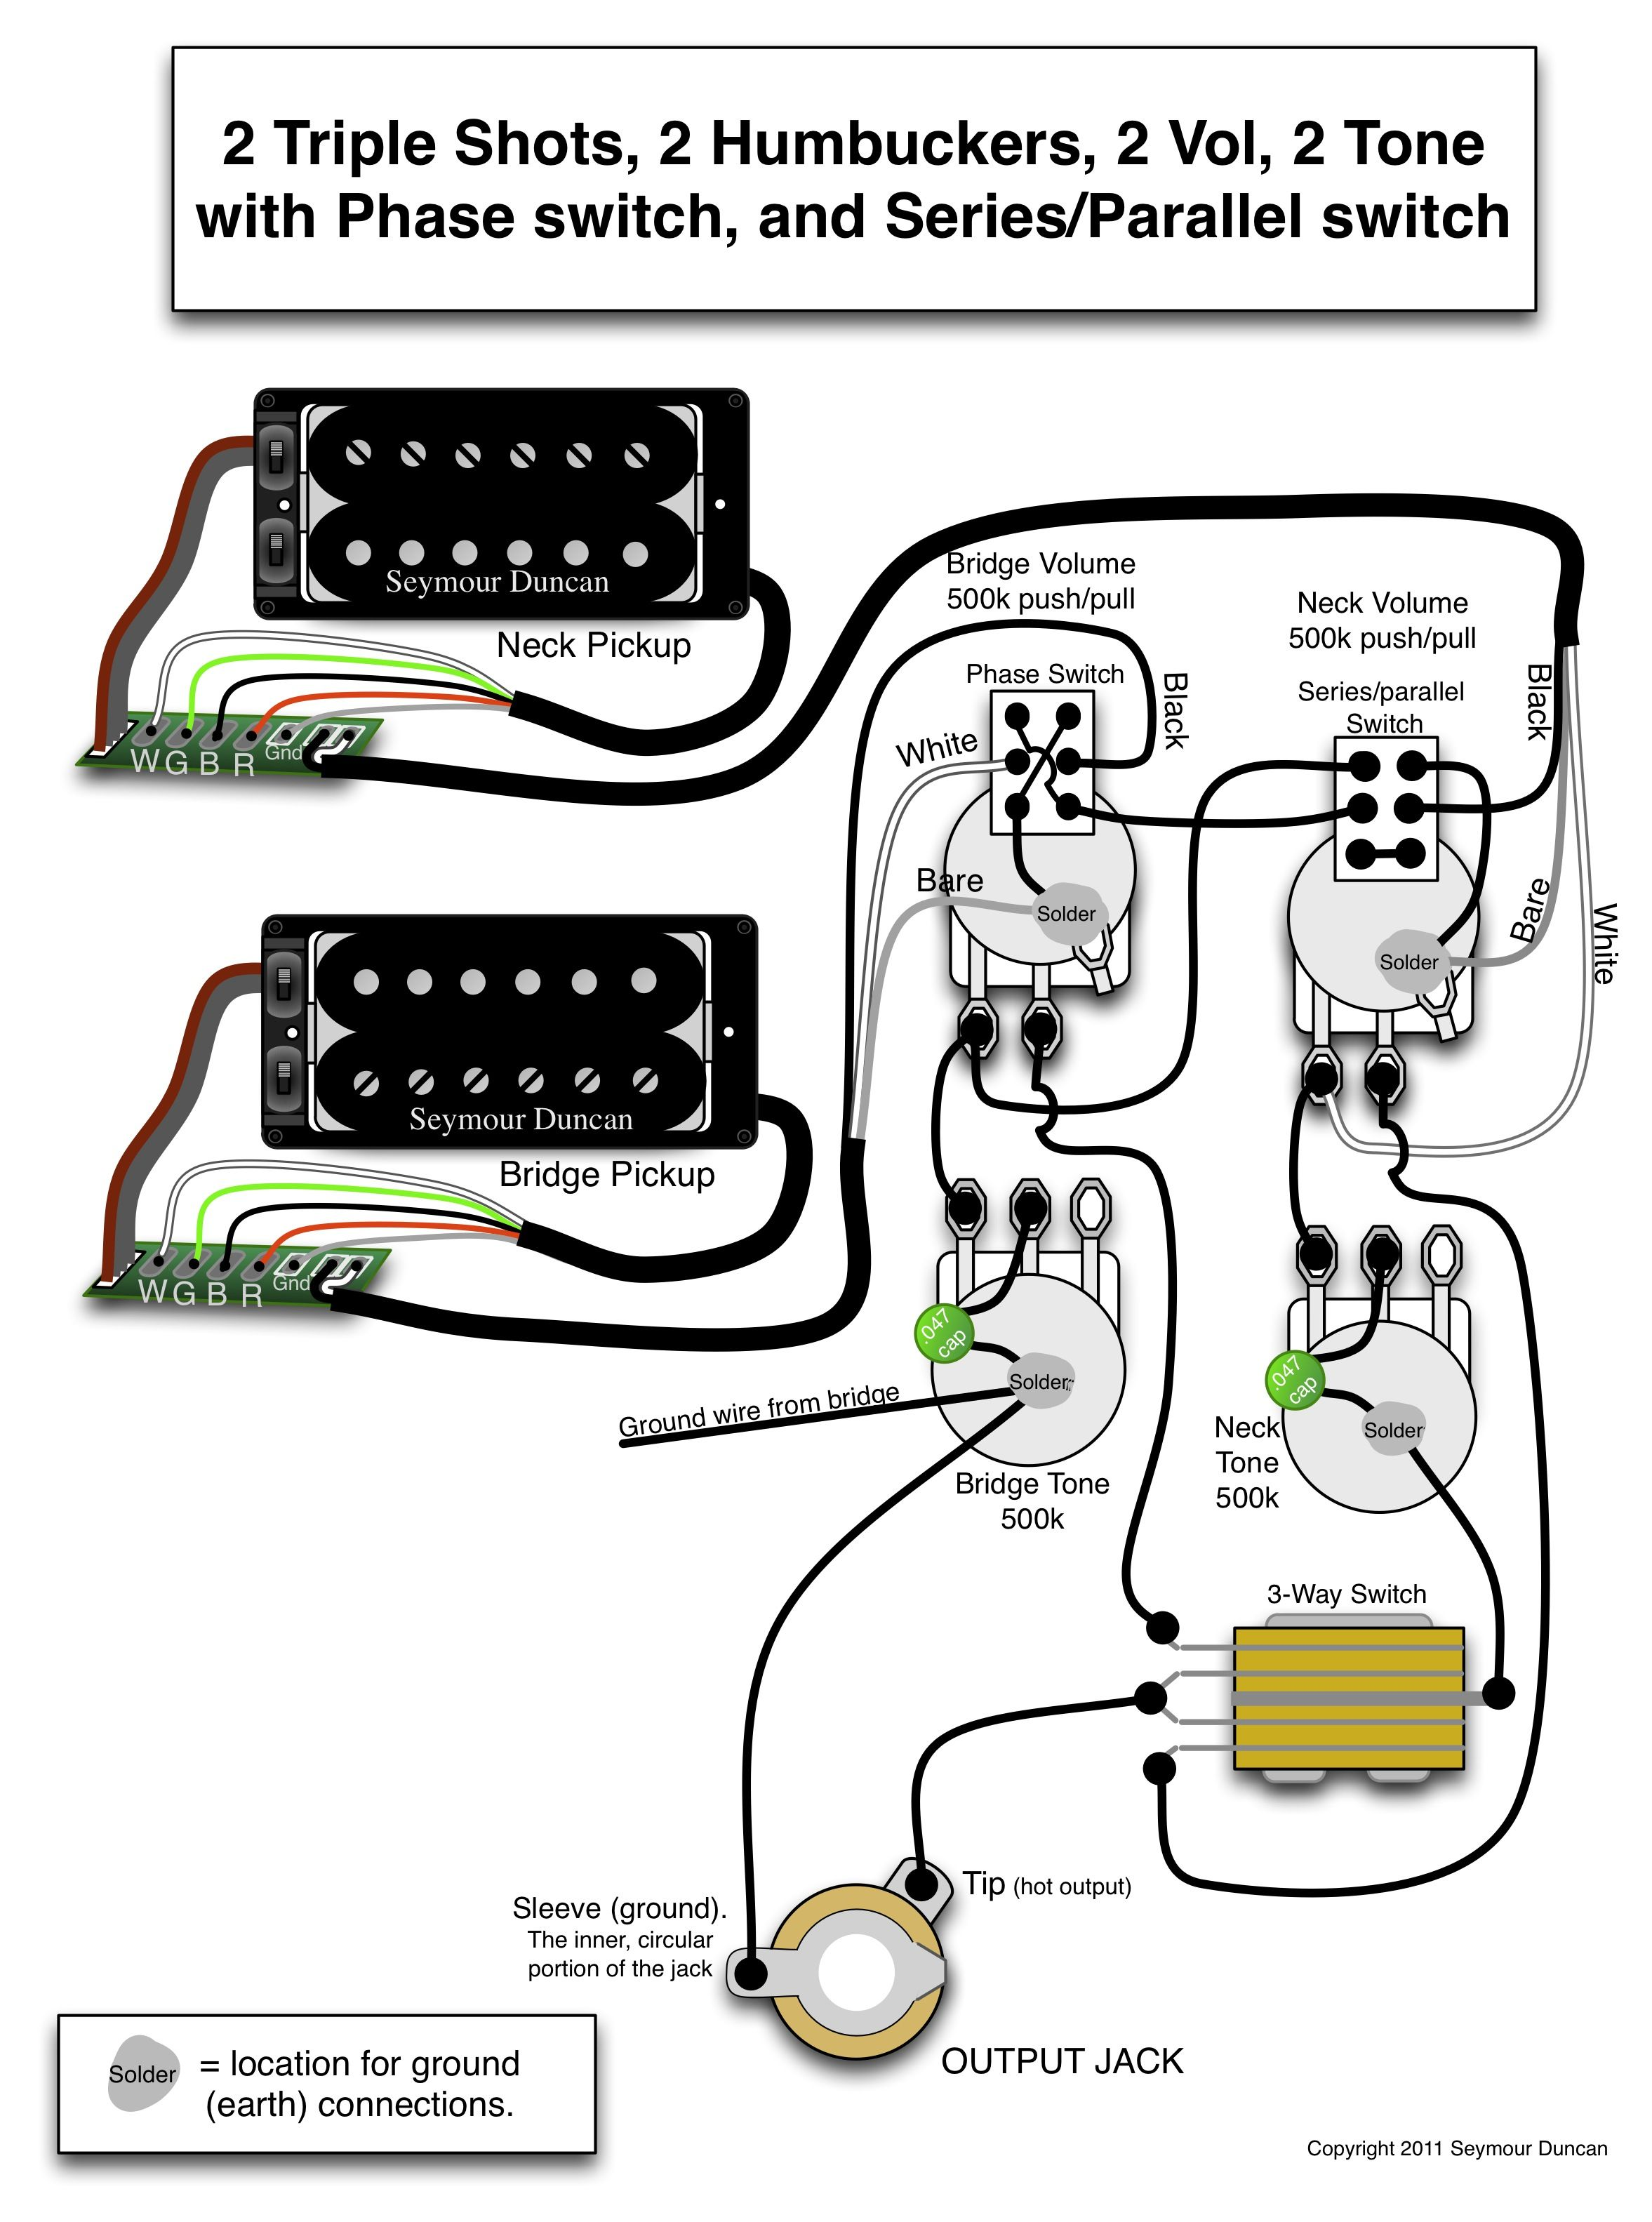 Seymour Duncan Wiring Diagram 2 Triple Shots 2